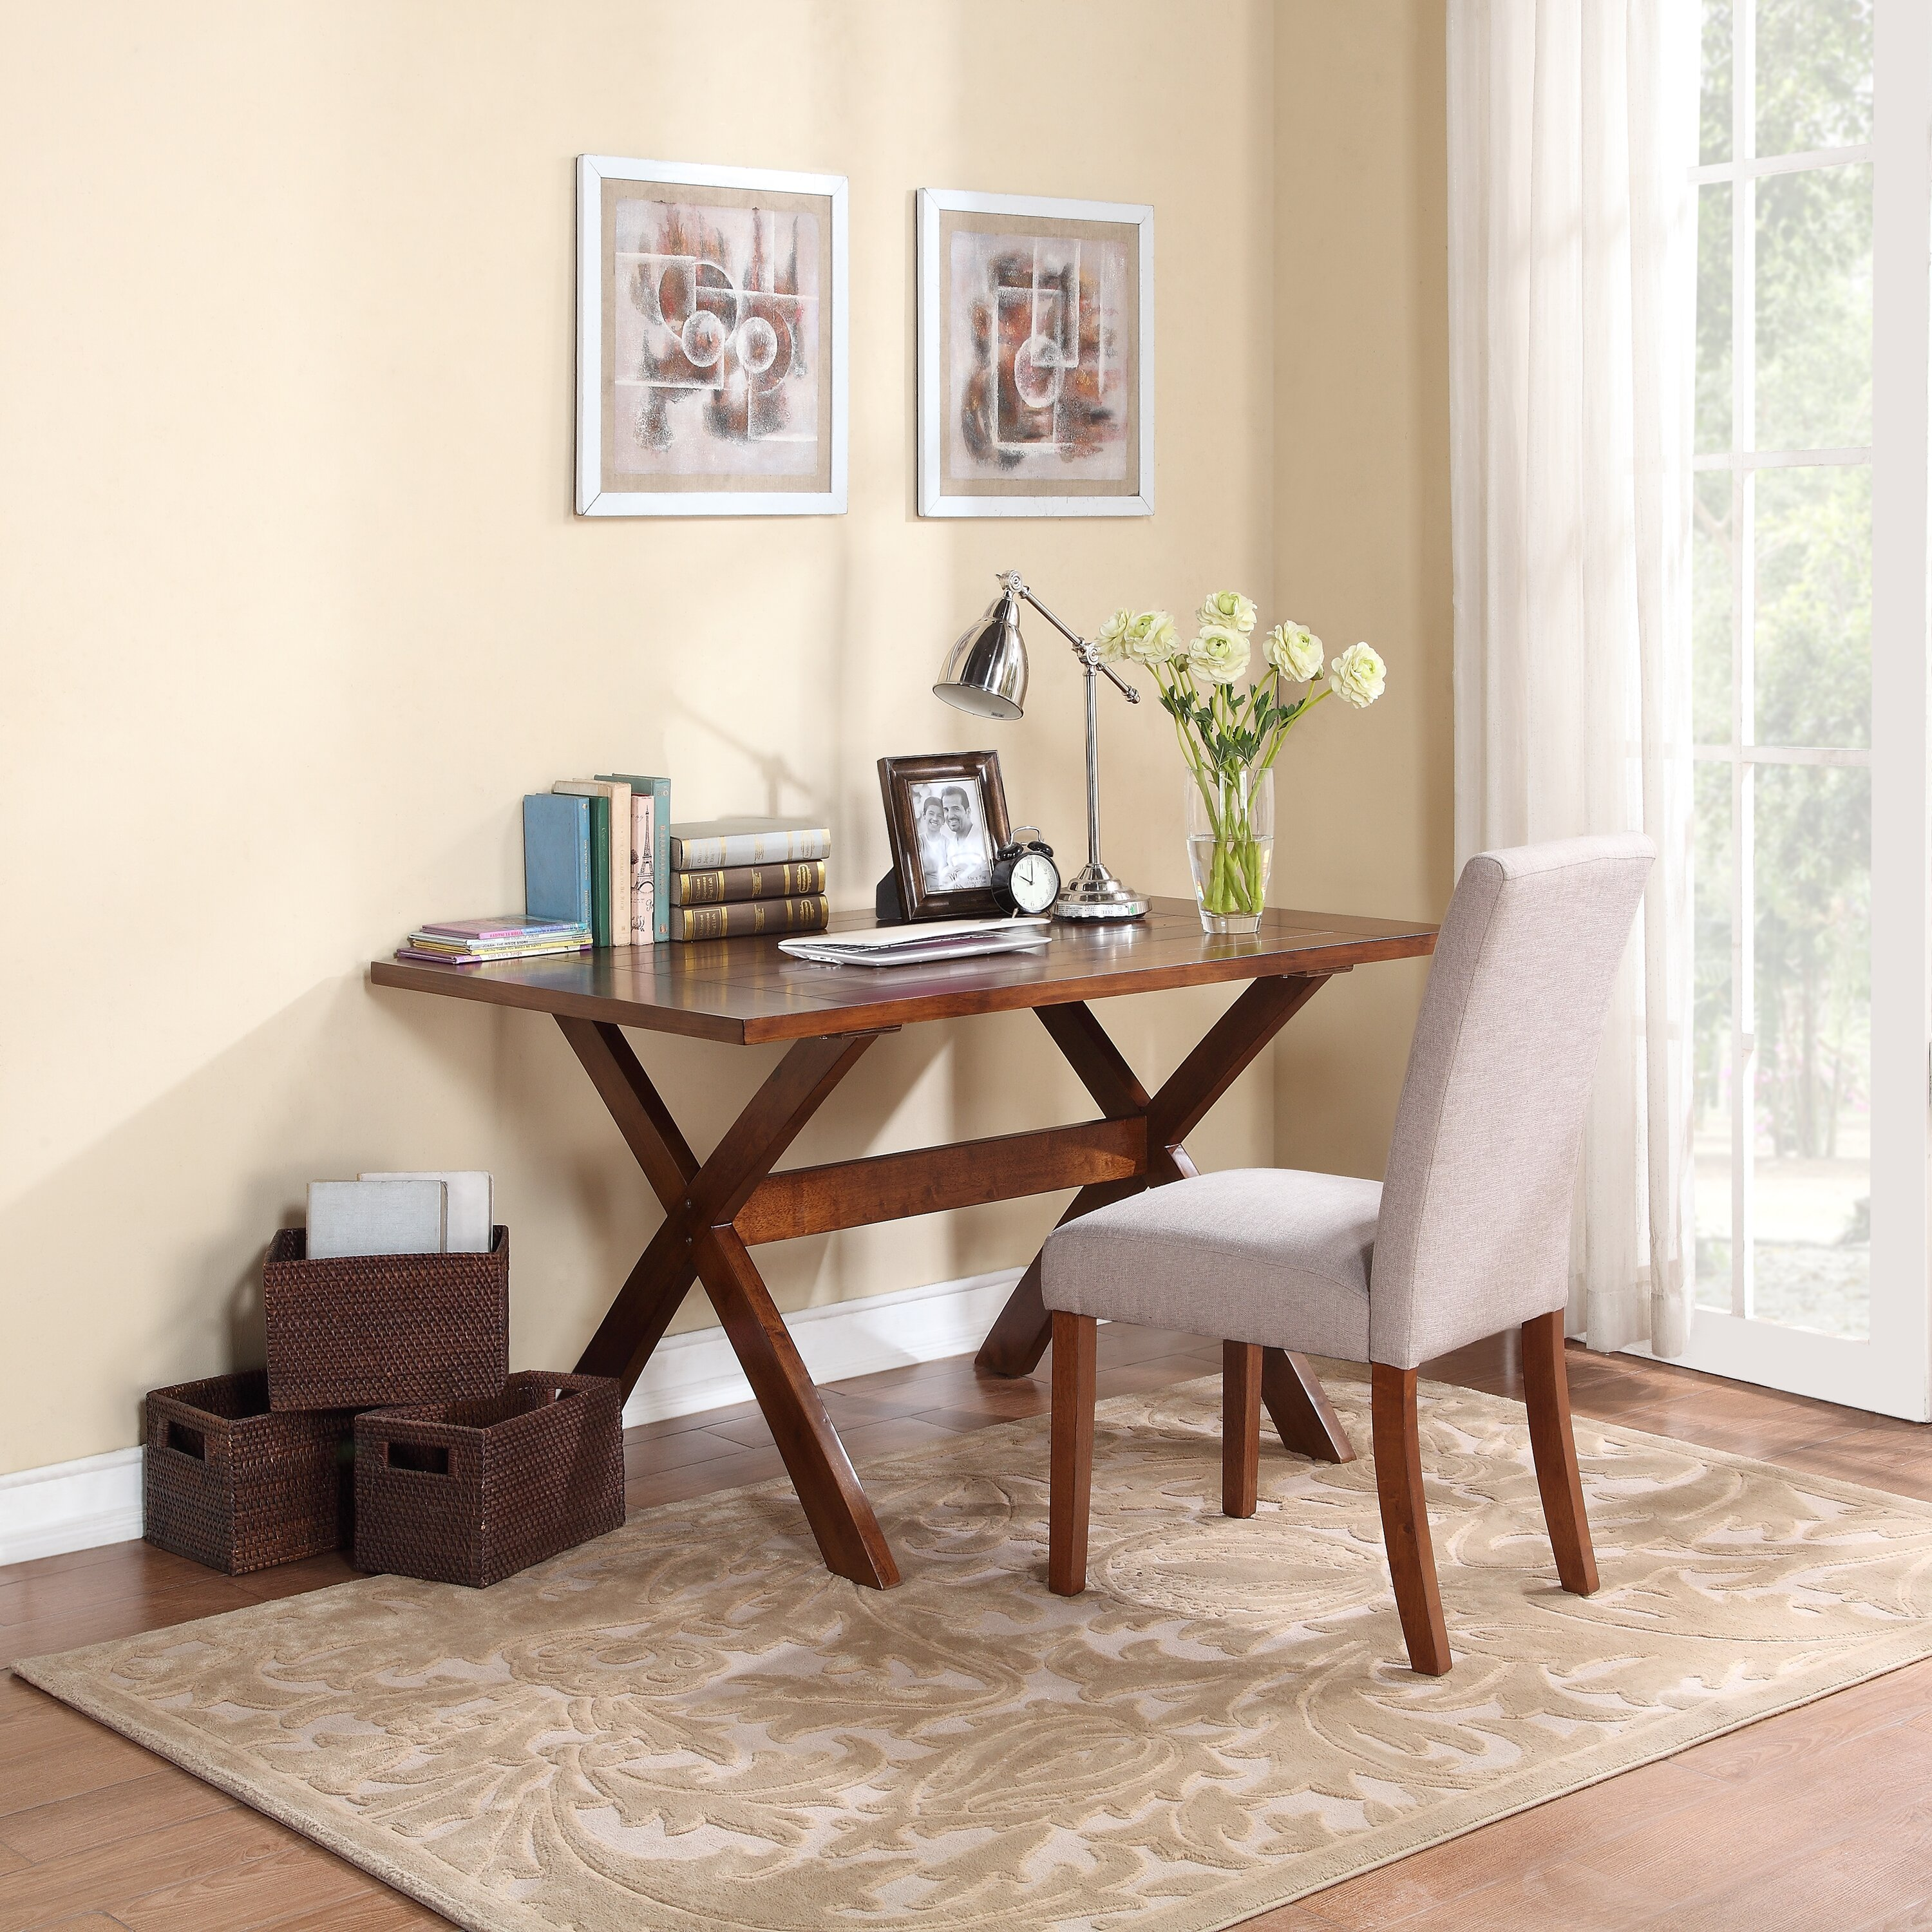 Dorel Trestle Dining TableDorel Living Trestle Dining Table Reviews - Wayfair trestle table